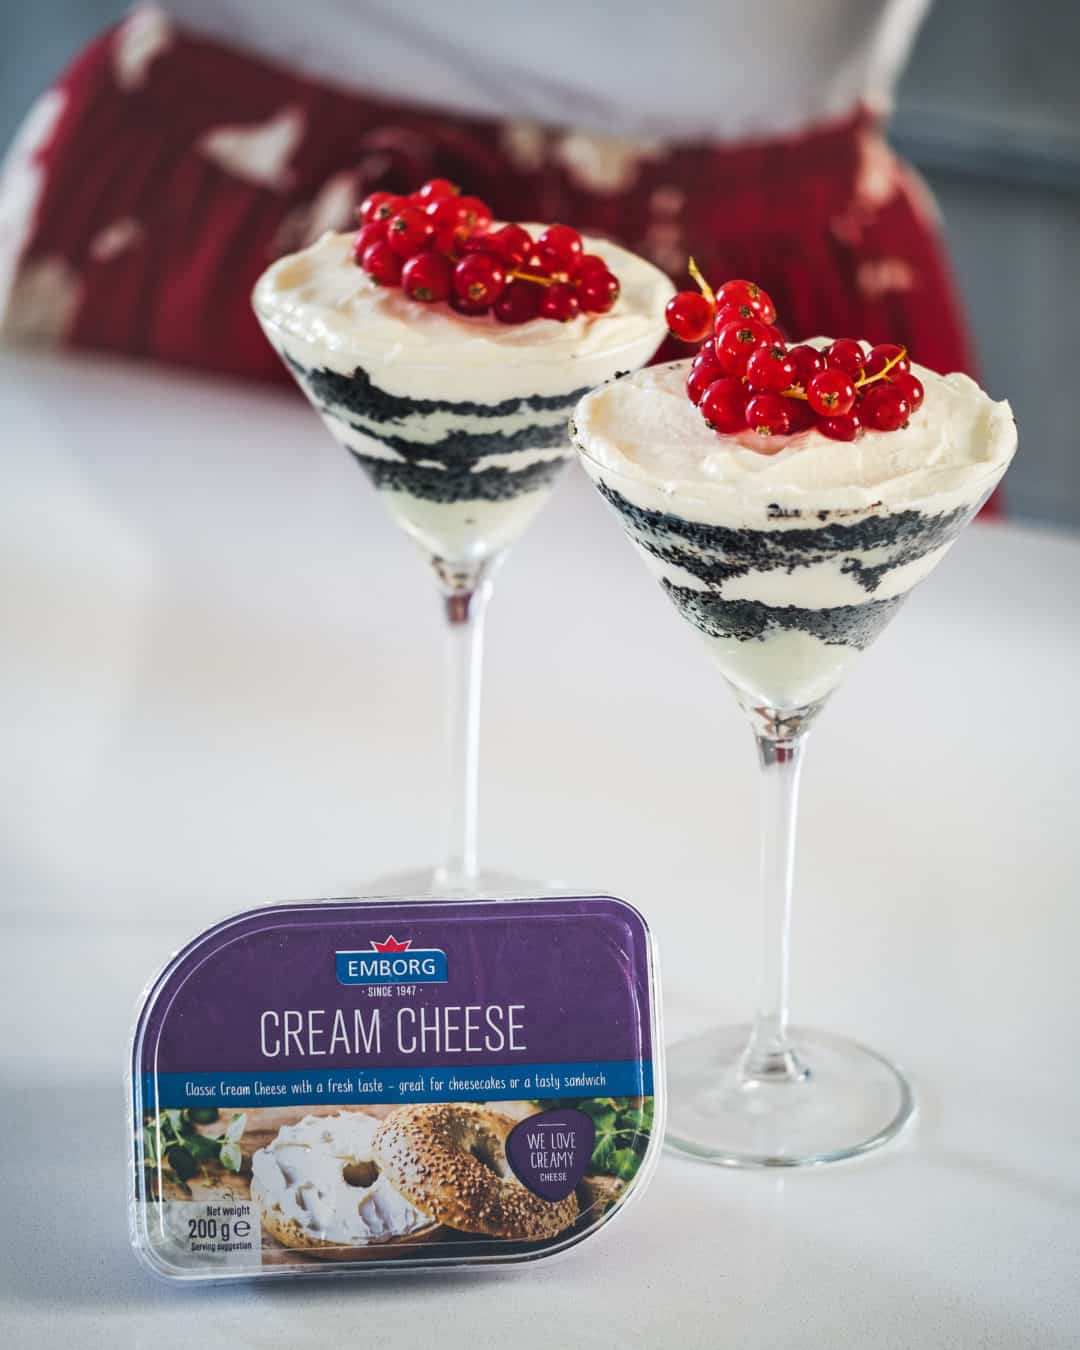 Cheese recipes Whatinstore, cheesecake with biscuits